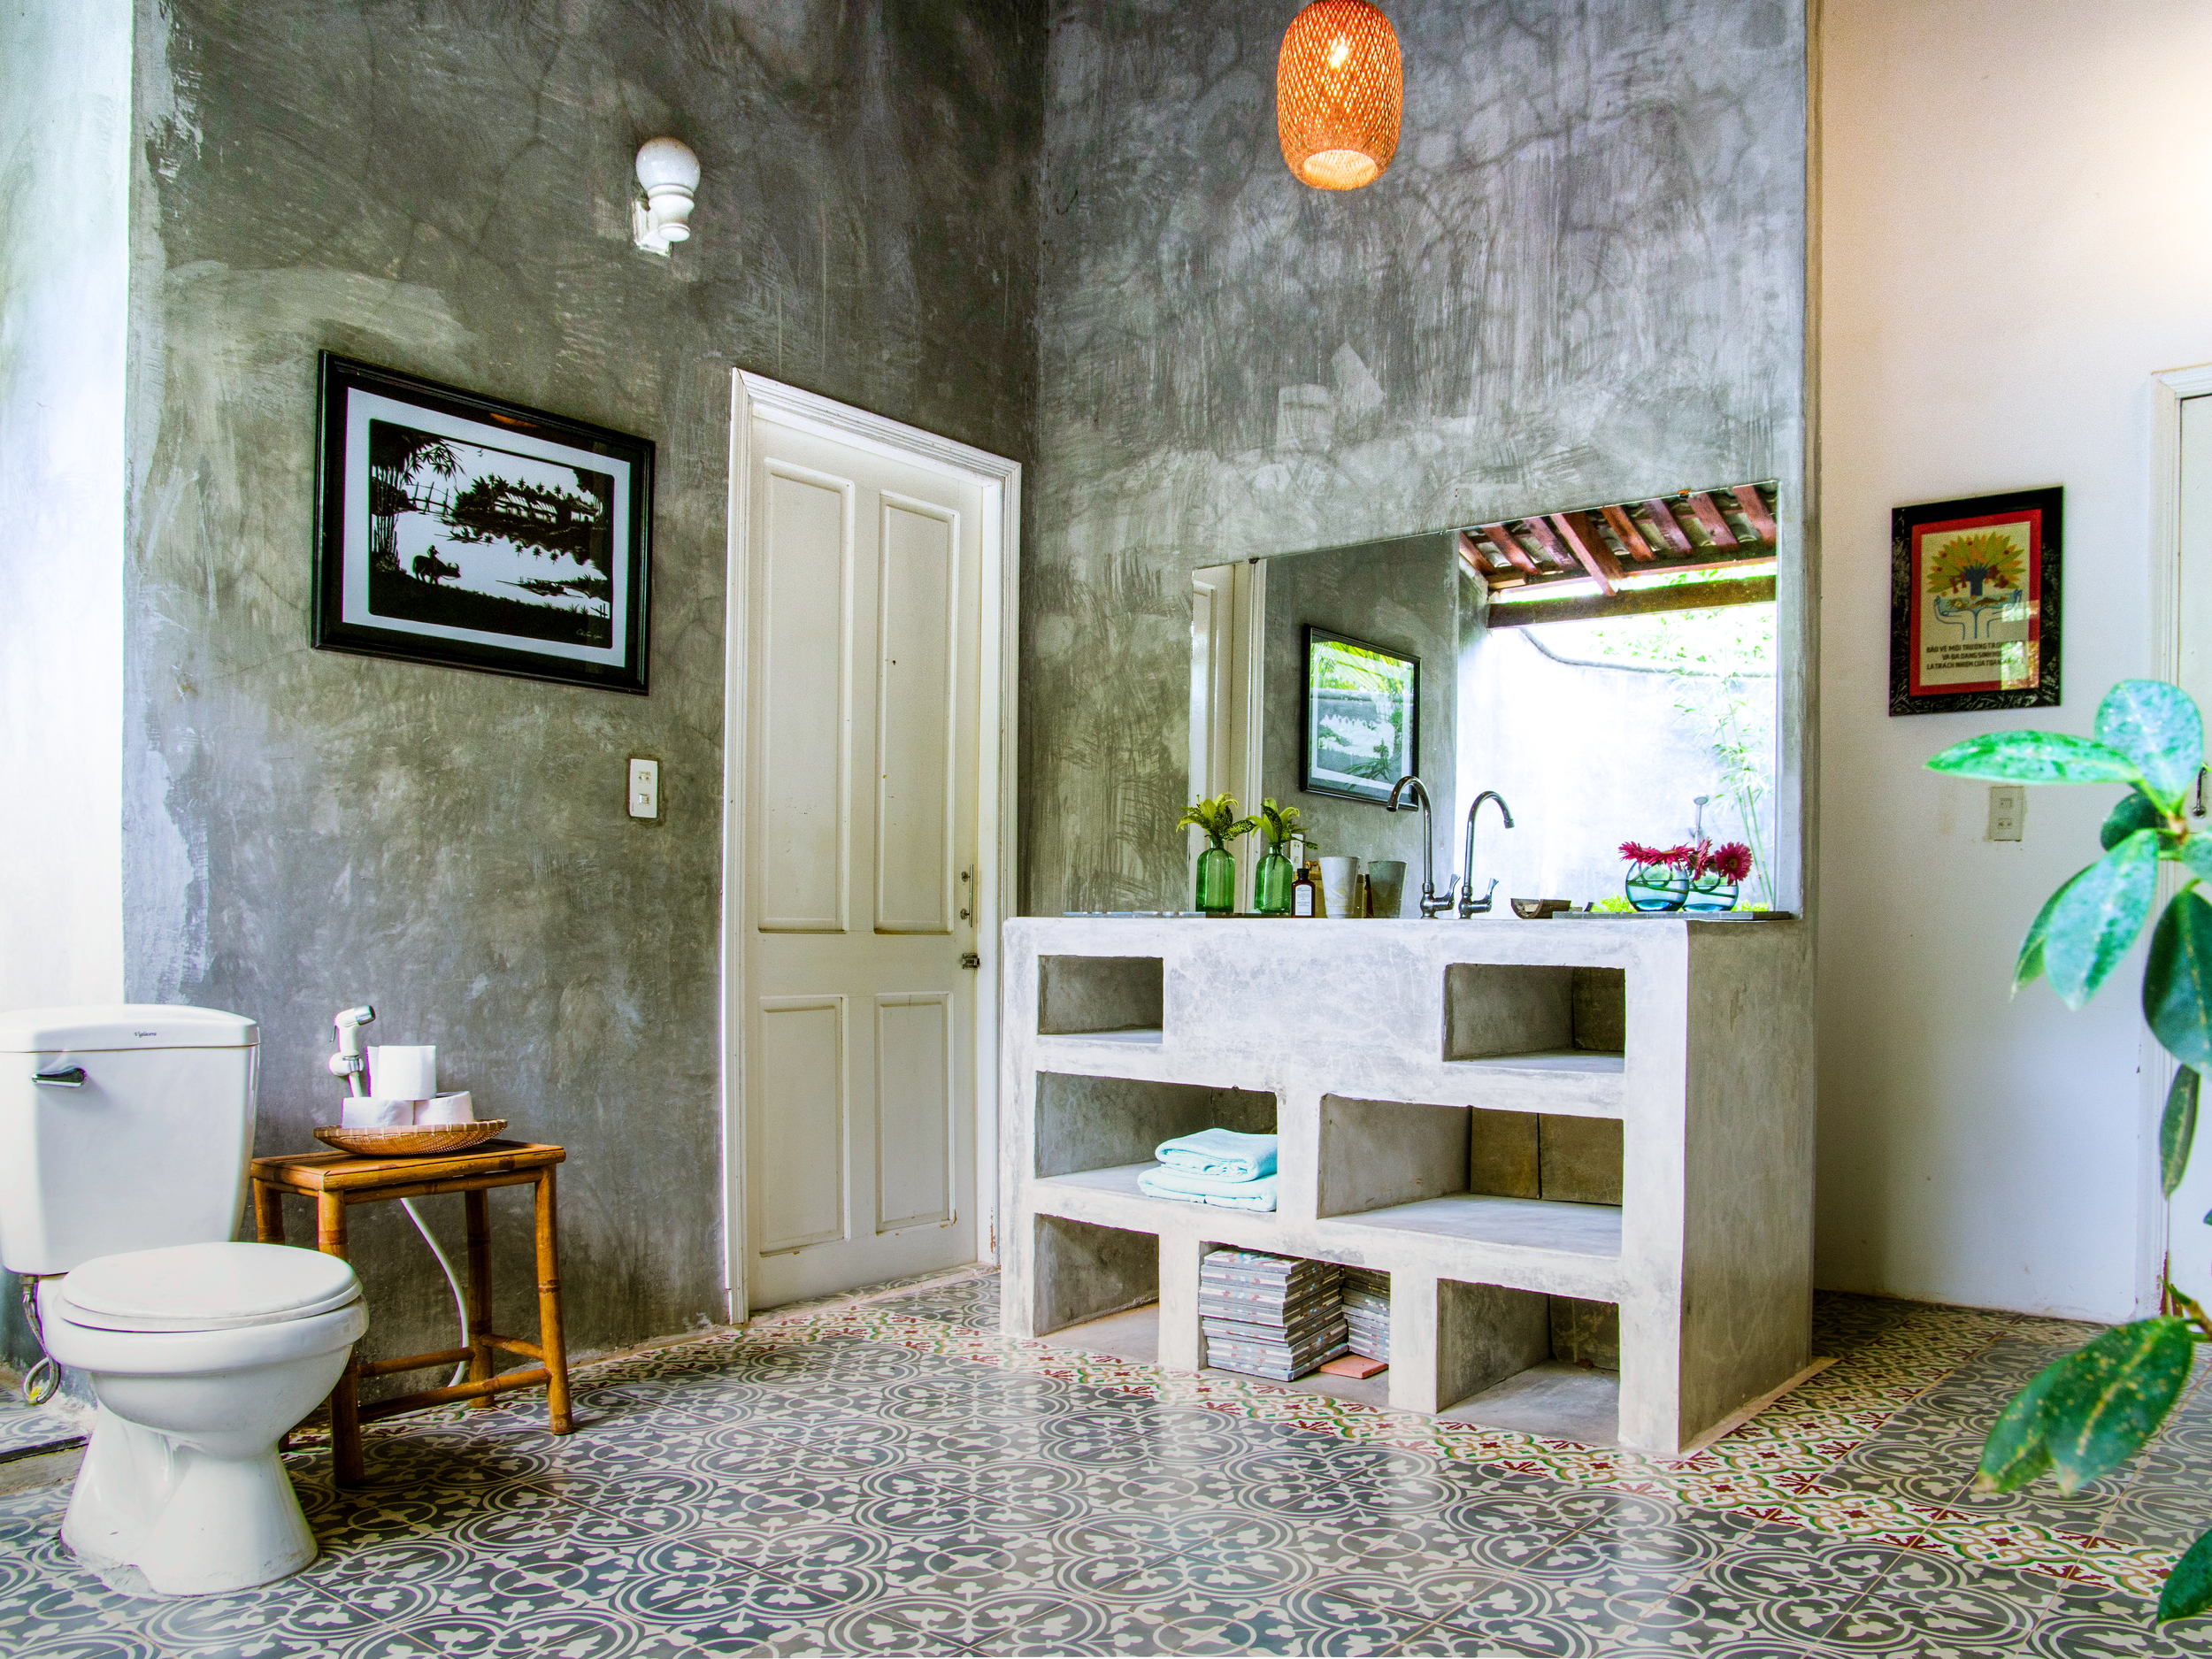 phuo-quoc-bamboo-cottage-37.jpg